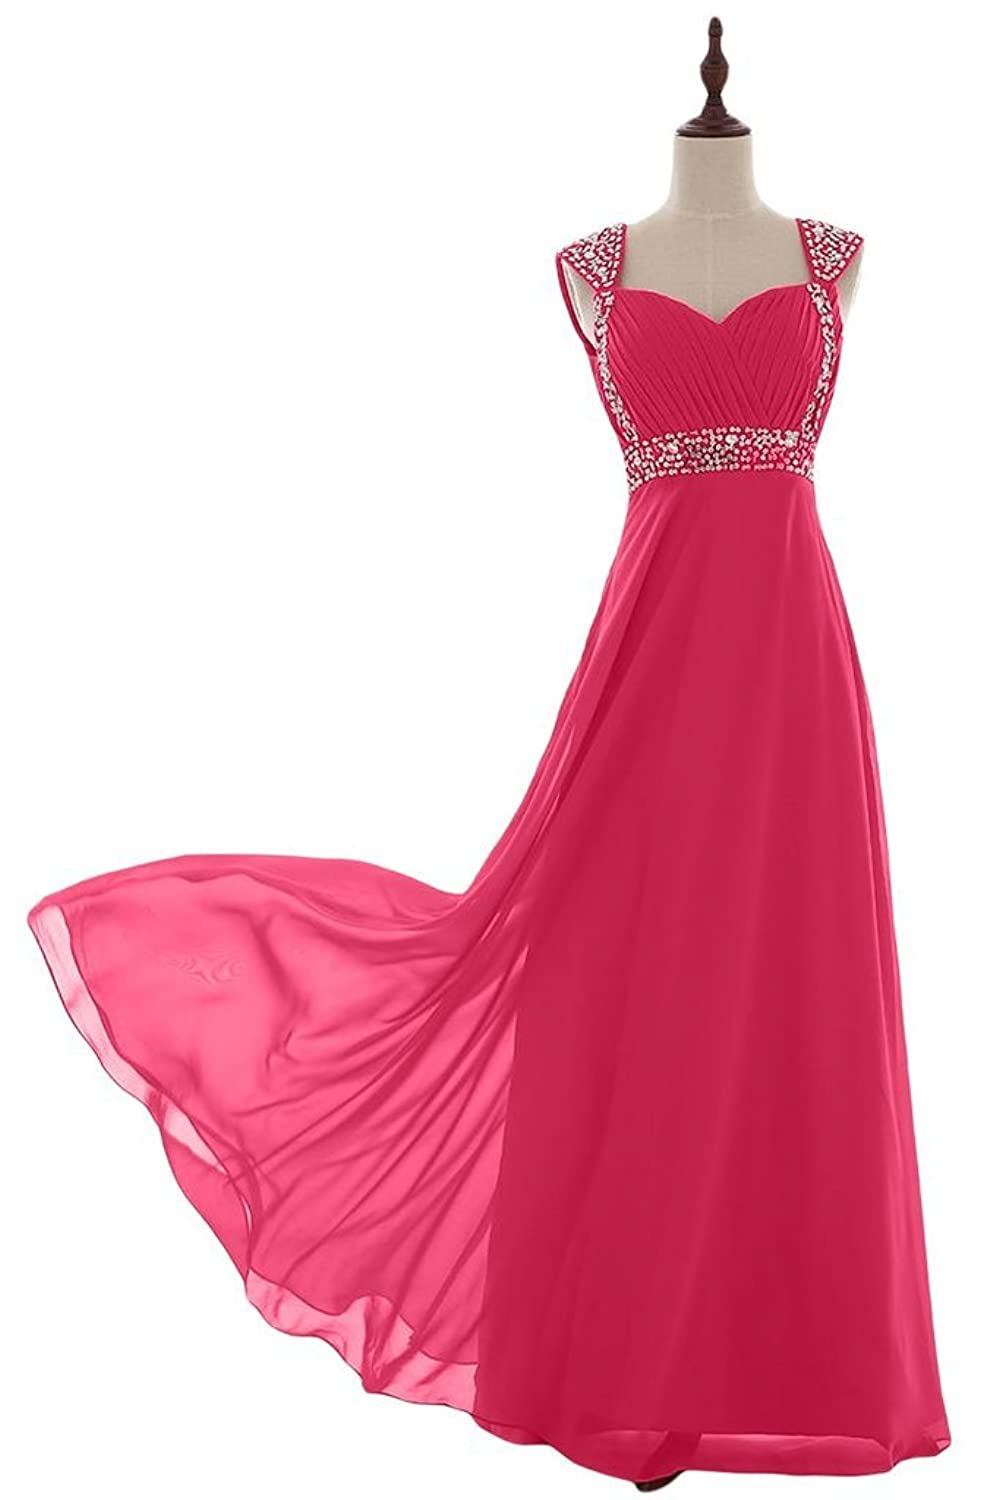 Vimans? Girl's Elegant Long Fuschia Pleated Gowns Evening Gowns with Beads